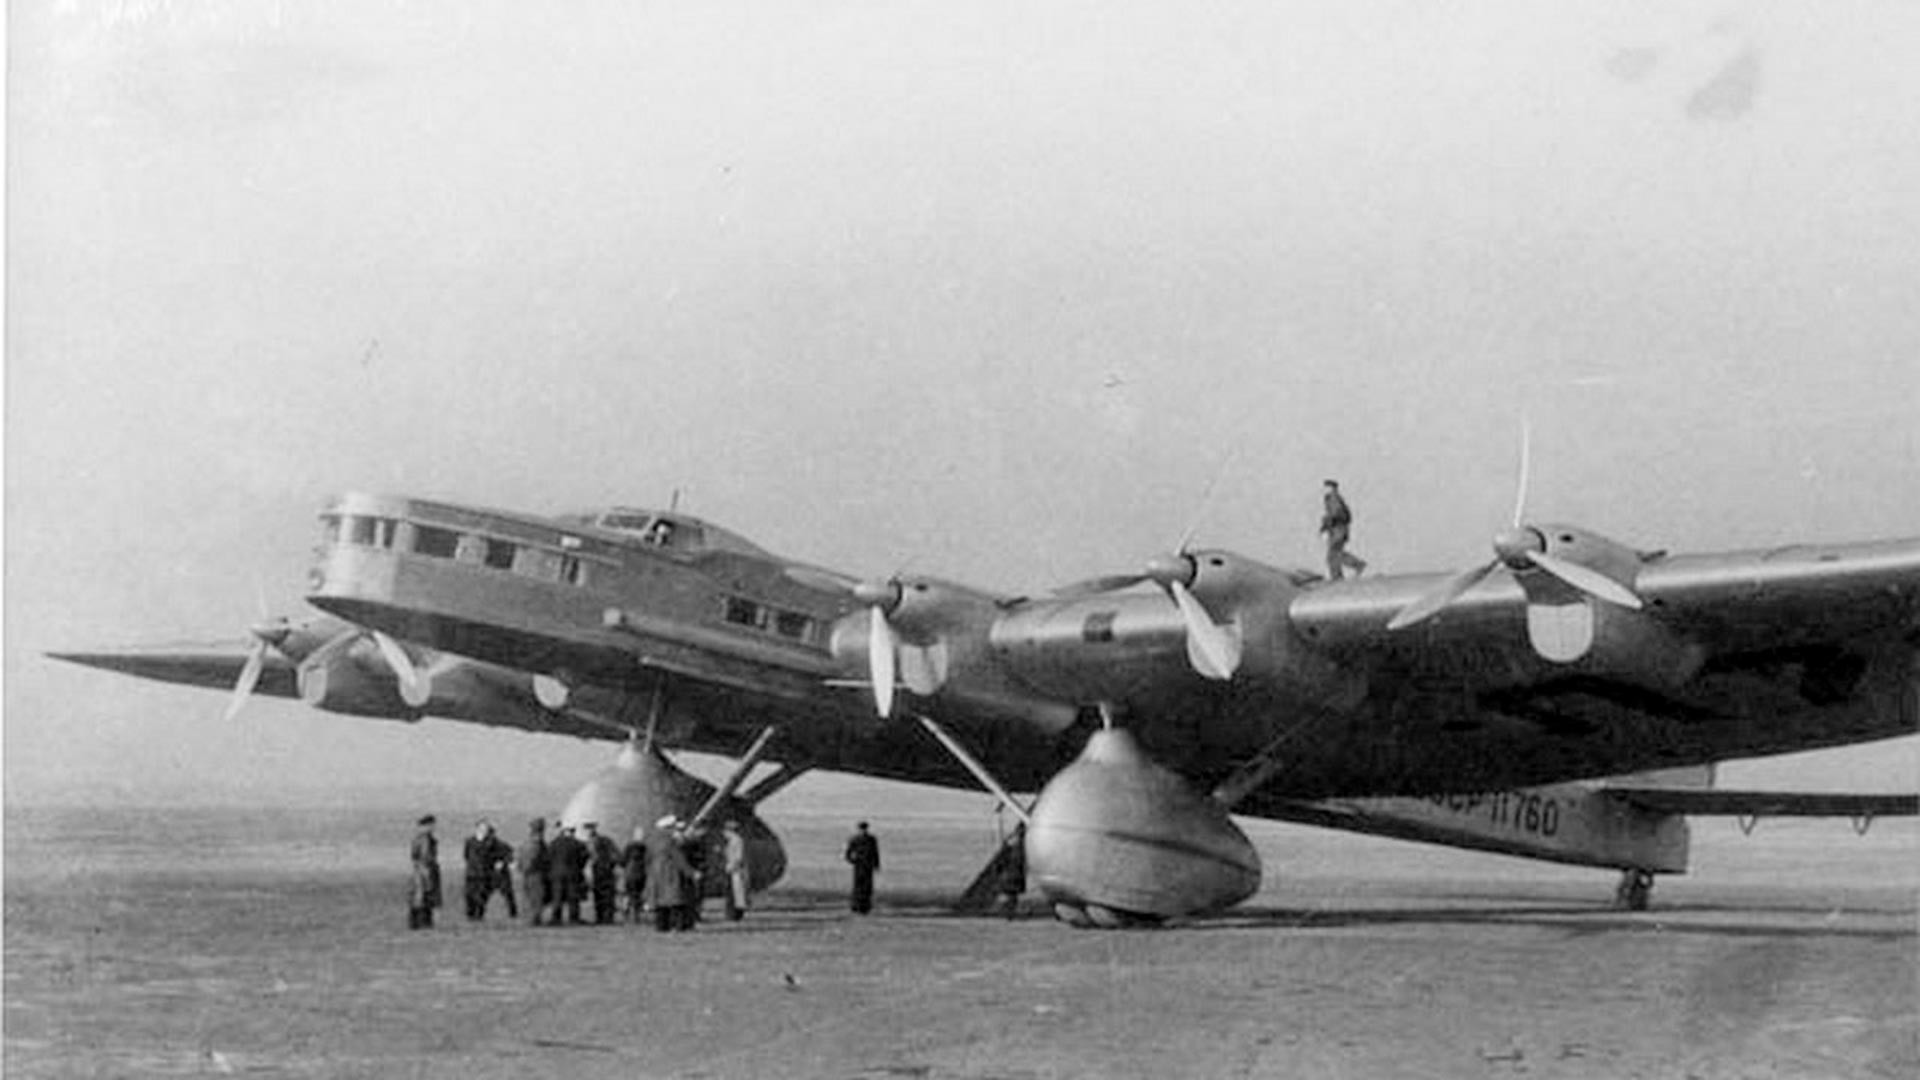 ANT-20 Bis